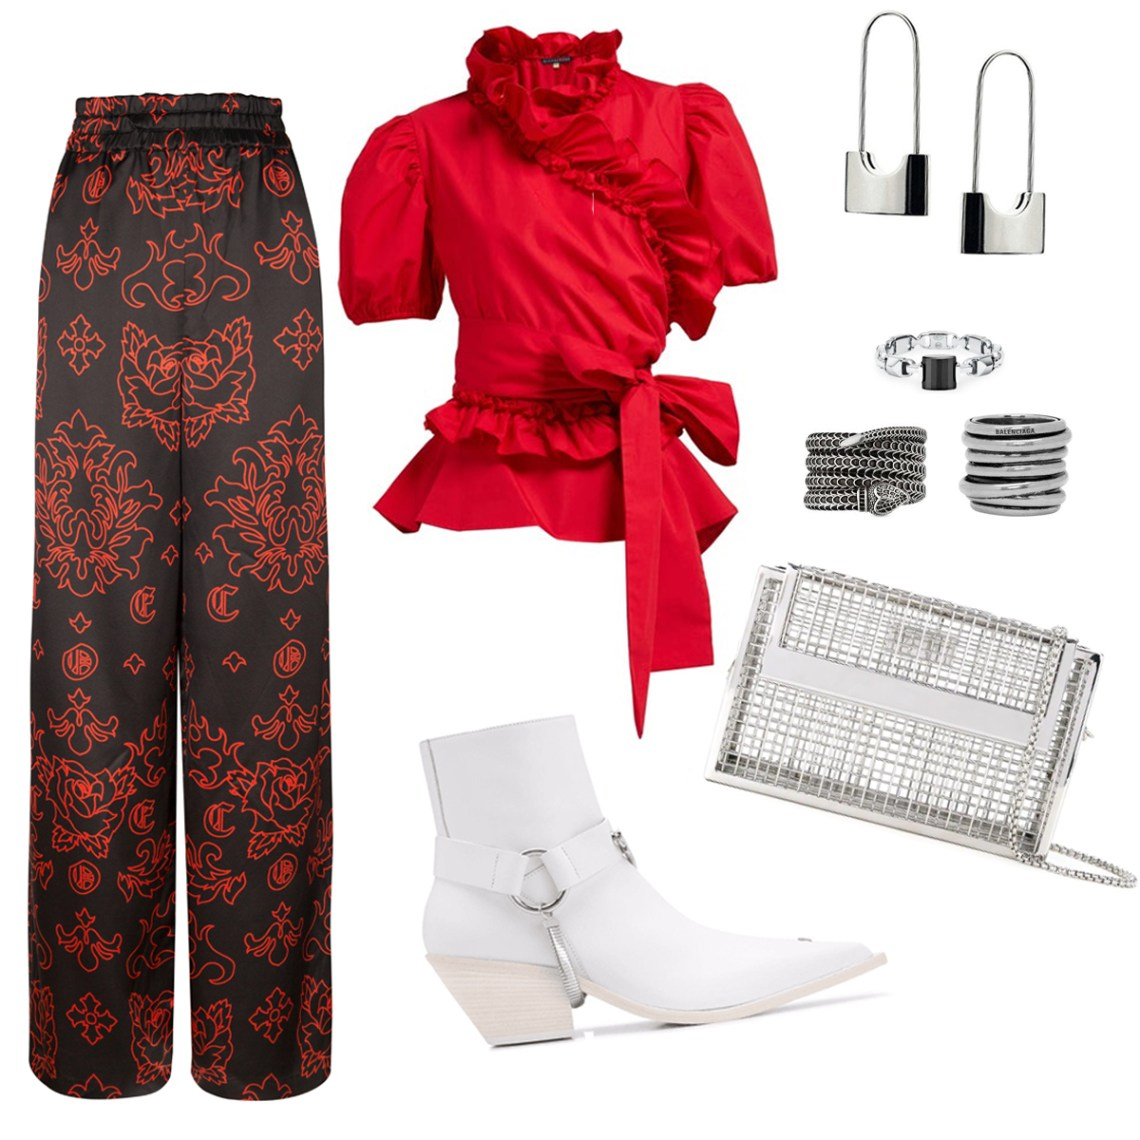 Outfit idea for the silk Tamar Wide Leg Pant. Pair with a red ruffle top and white cowboy boots.